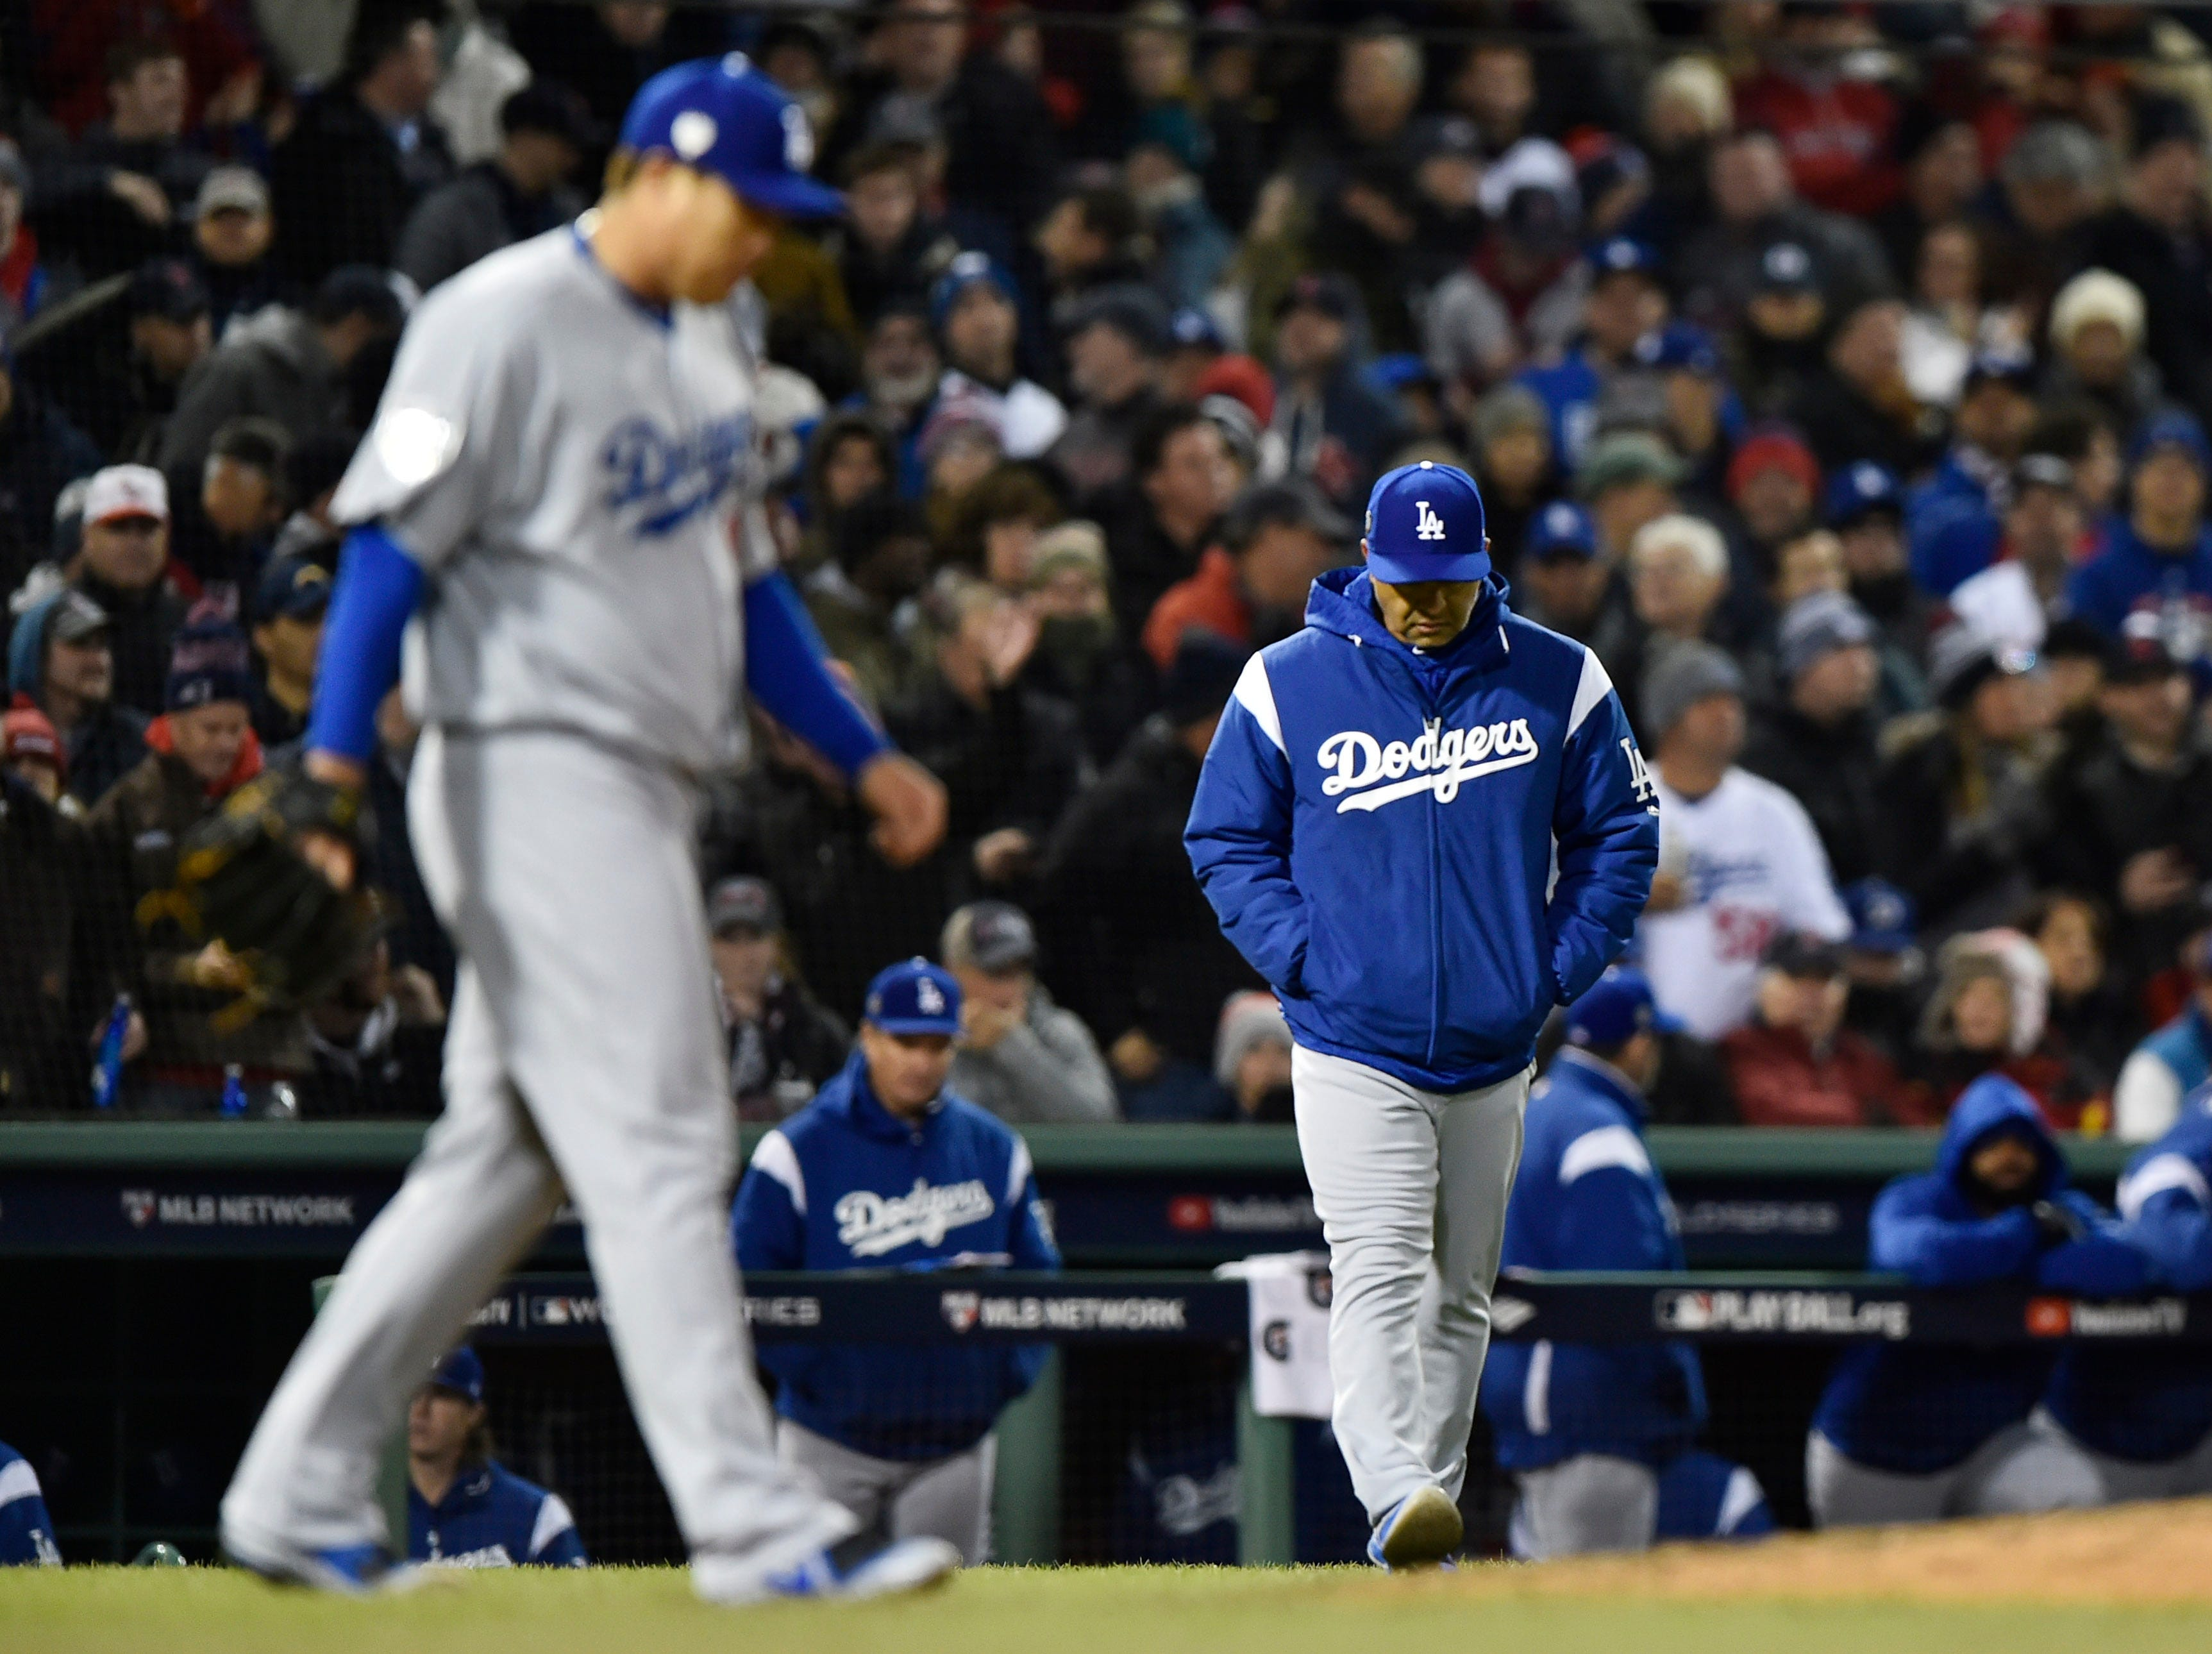 Game 2 at Fenway Park: Dodgers manager Dave Roberts comes out to relieve Hyun-Jin Ryu in the fifth.